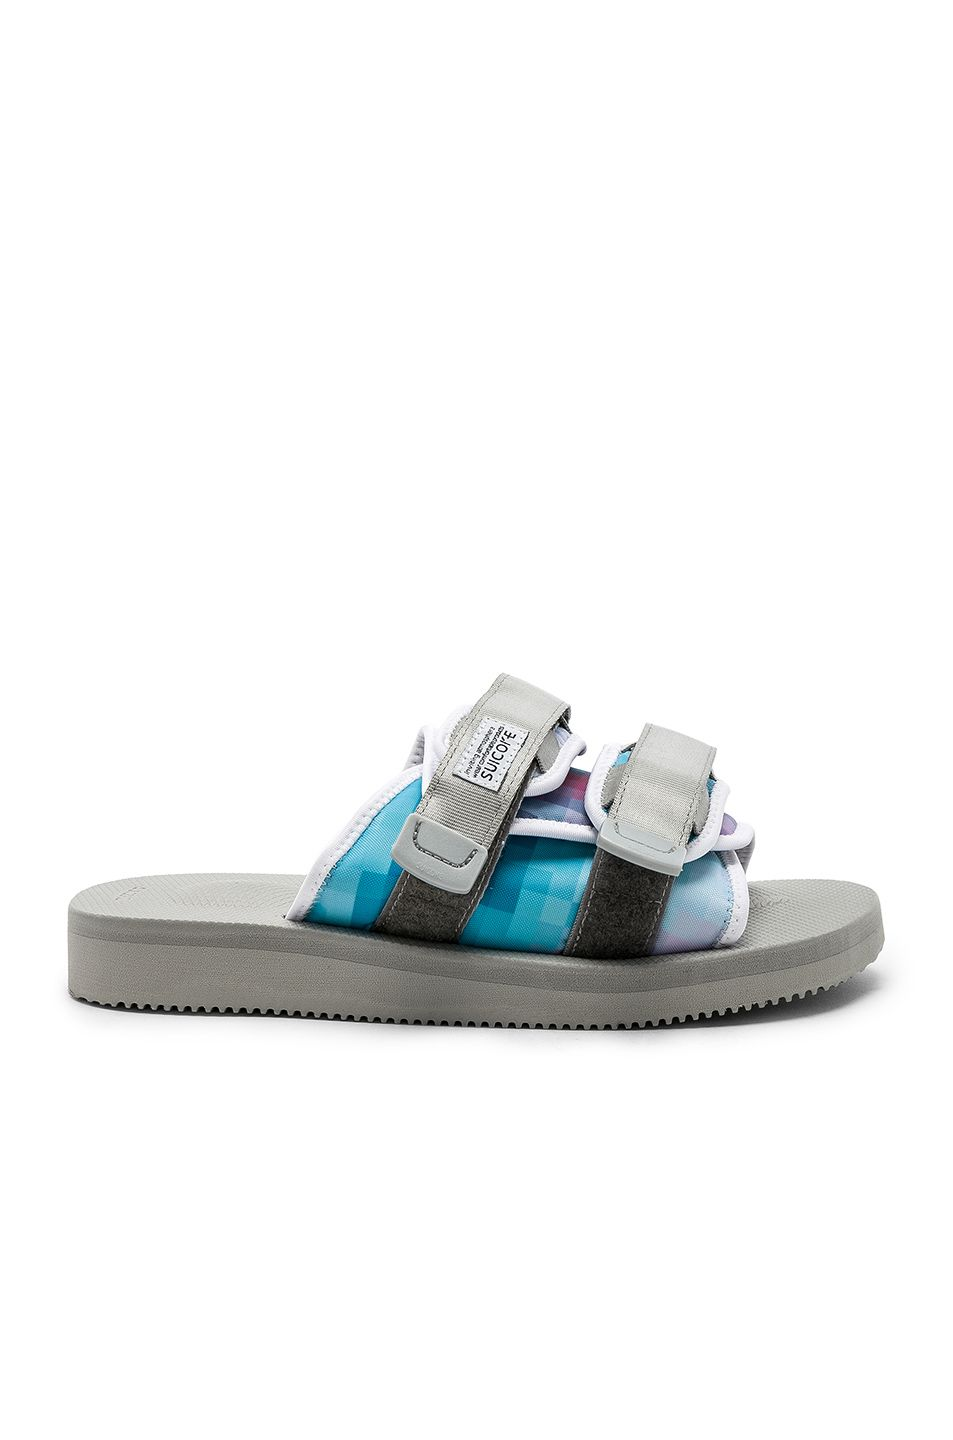 b69a873b120a Image 2 of JOHN ELLIOTT x Suicoke Sandals in Pixel Photo